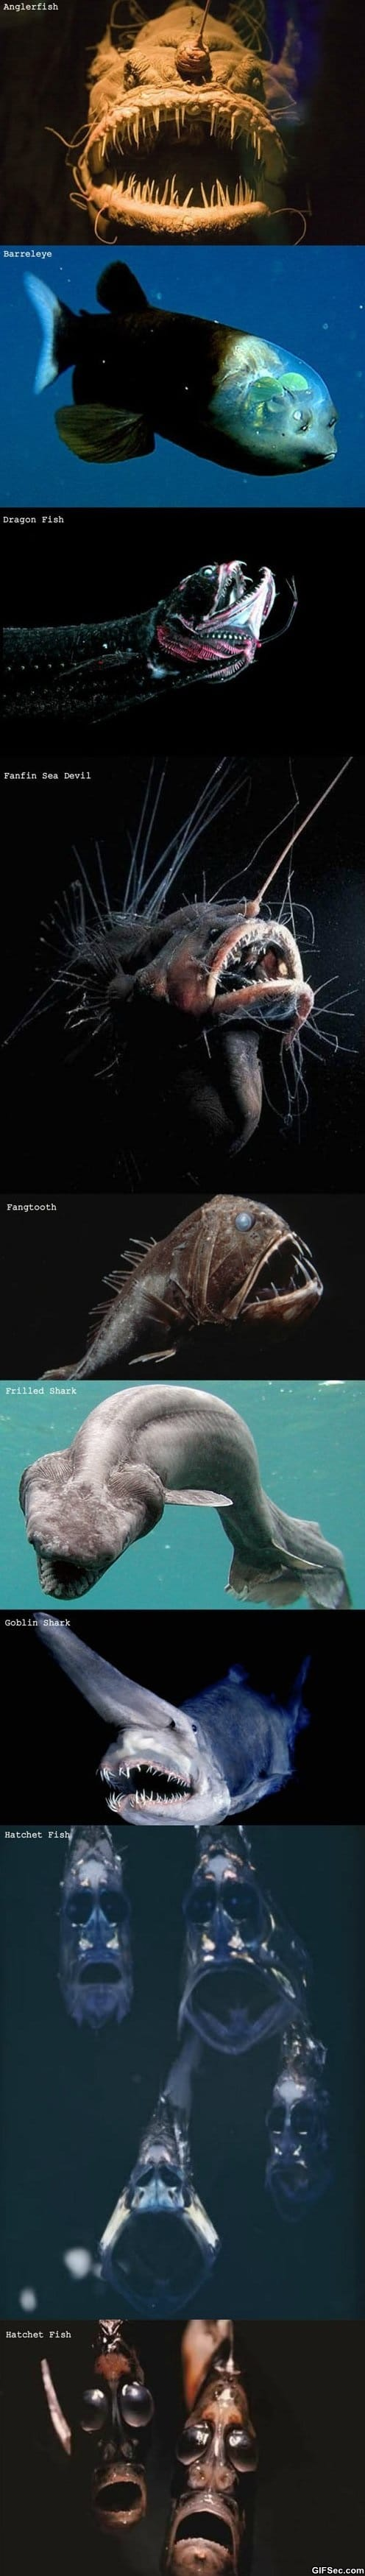 lol-strange-creatures-of-the-sea